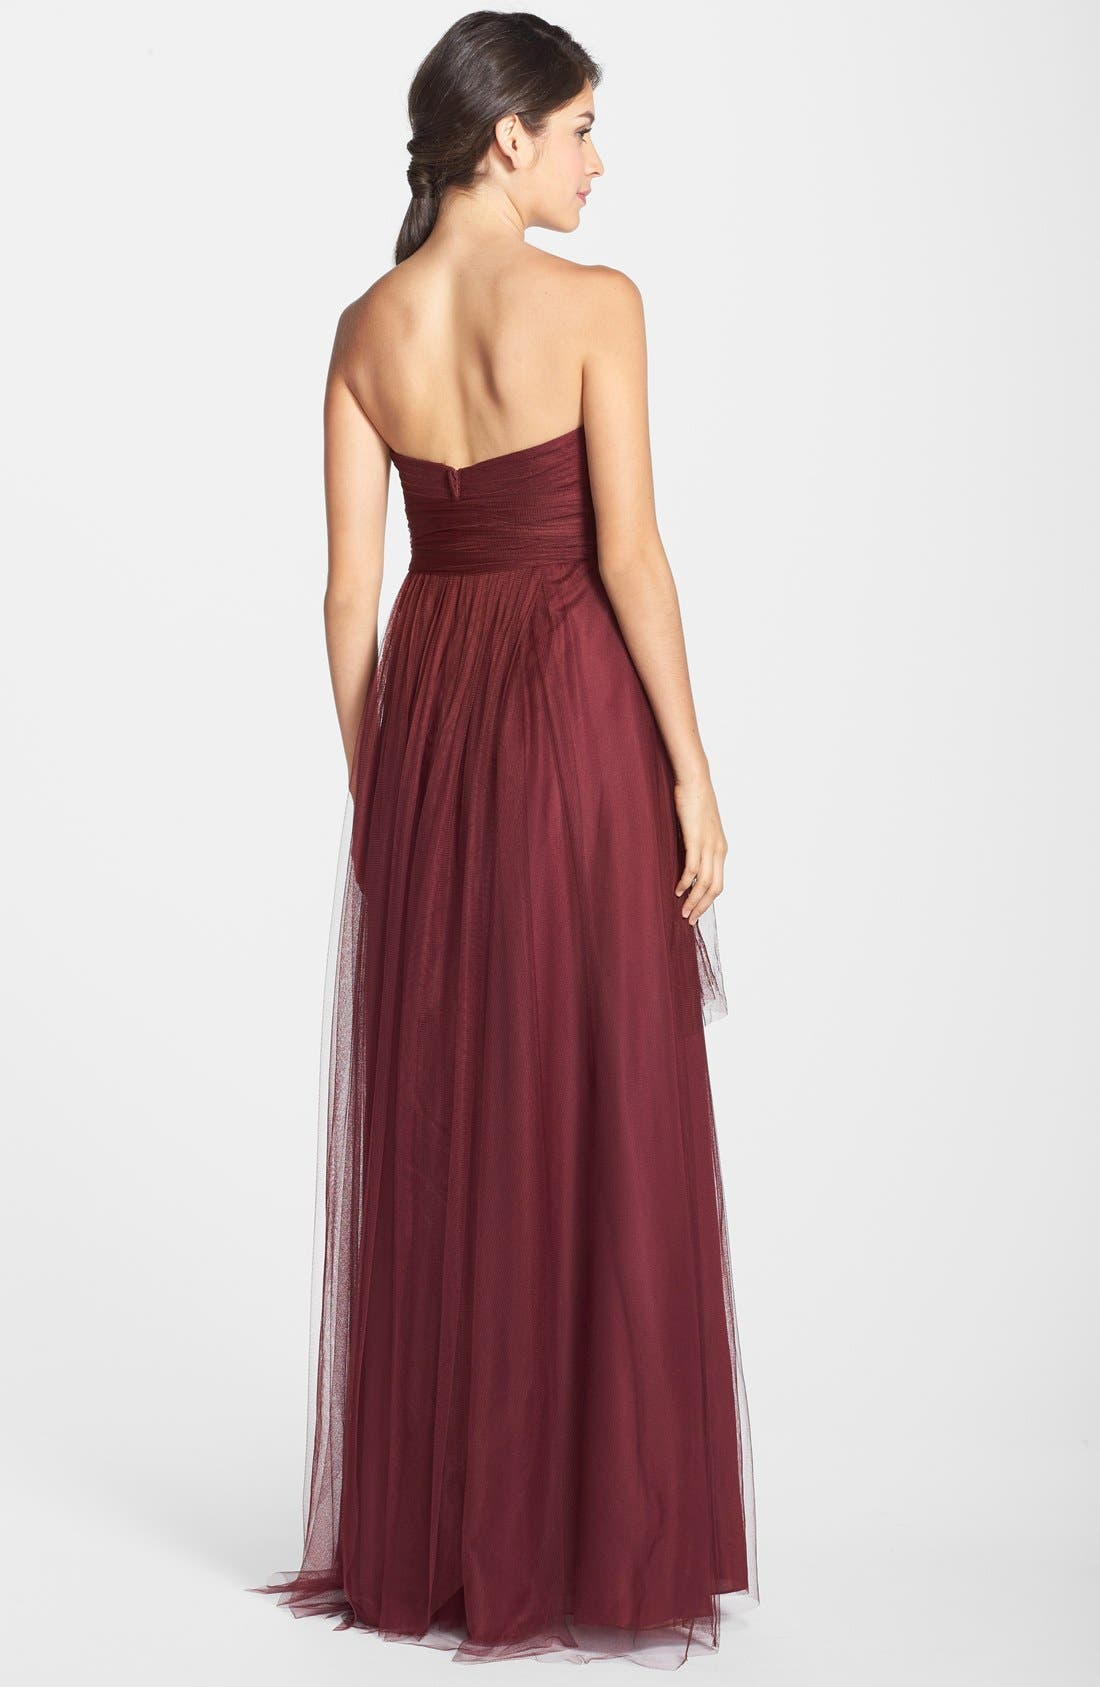 Annabelle Convertible Tulle Column Dress,                             Alternate thumbnail 64, color,